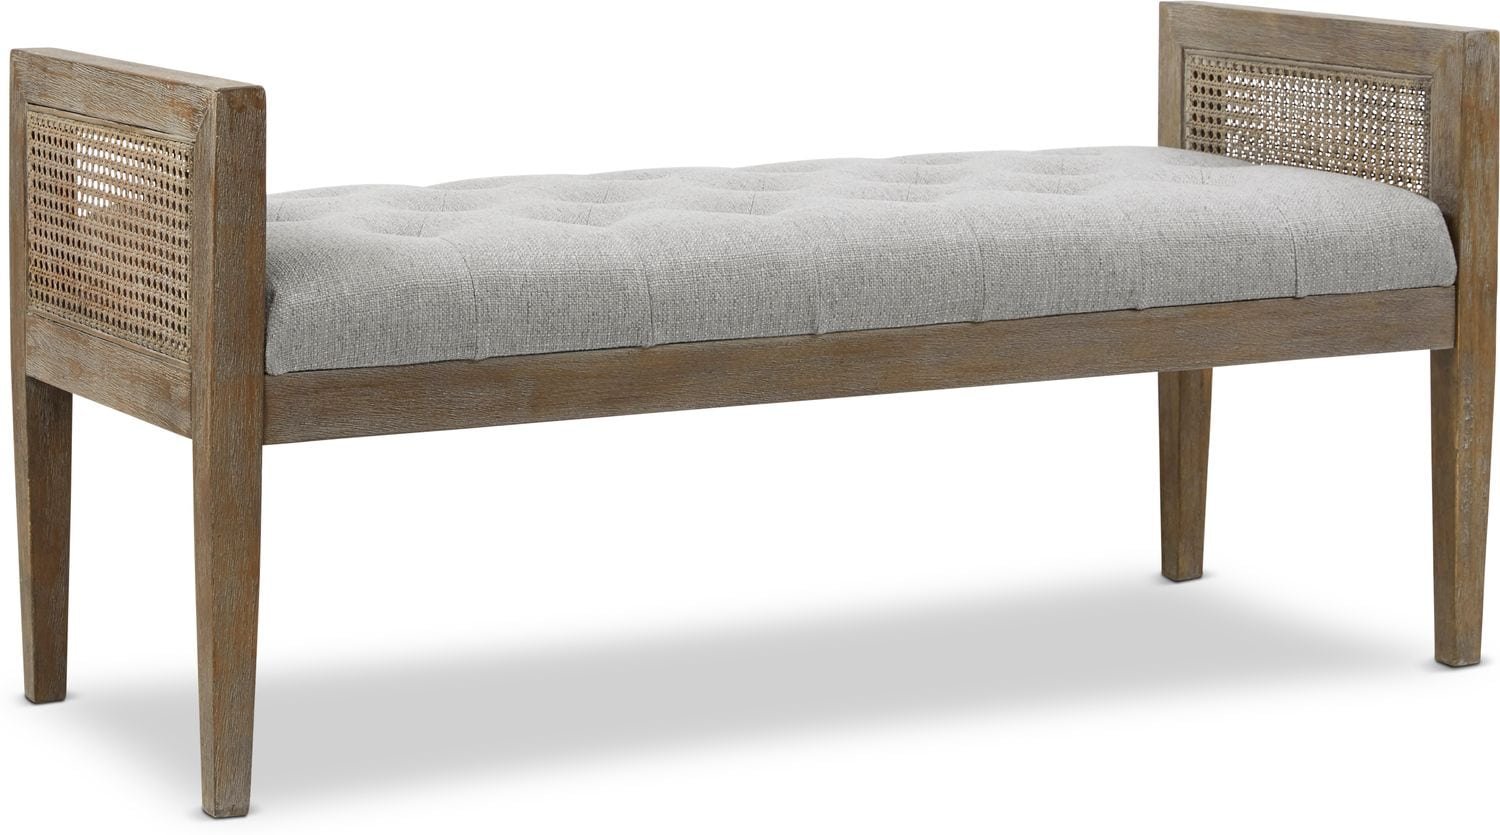 Accent and Occasional Furniture - Augusta Rattan Bench - Gray